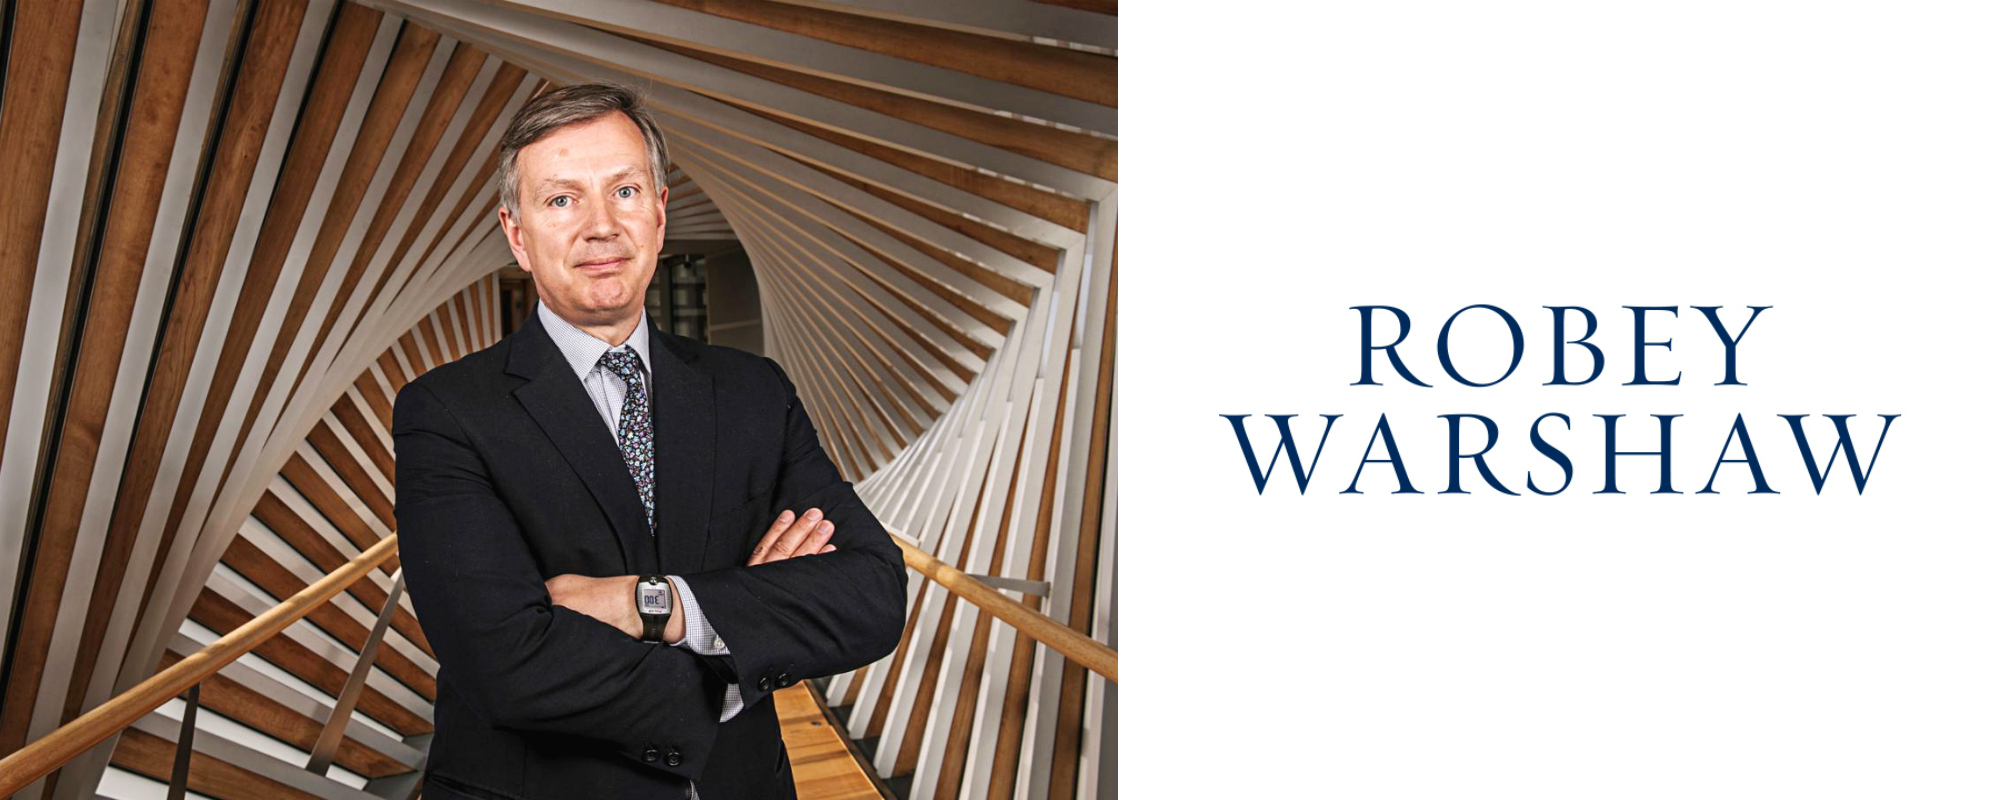 robey warshaw Most Powerful M&A Firms in the world best upslide